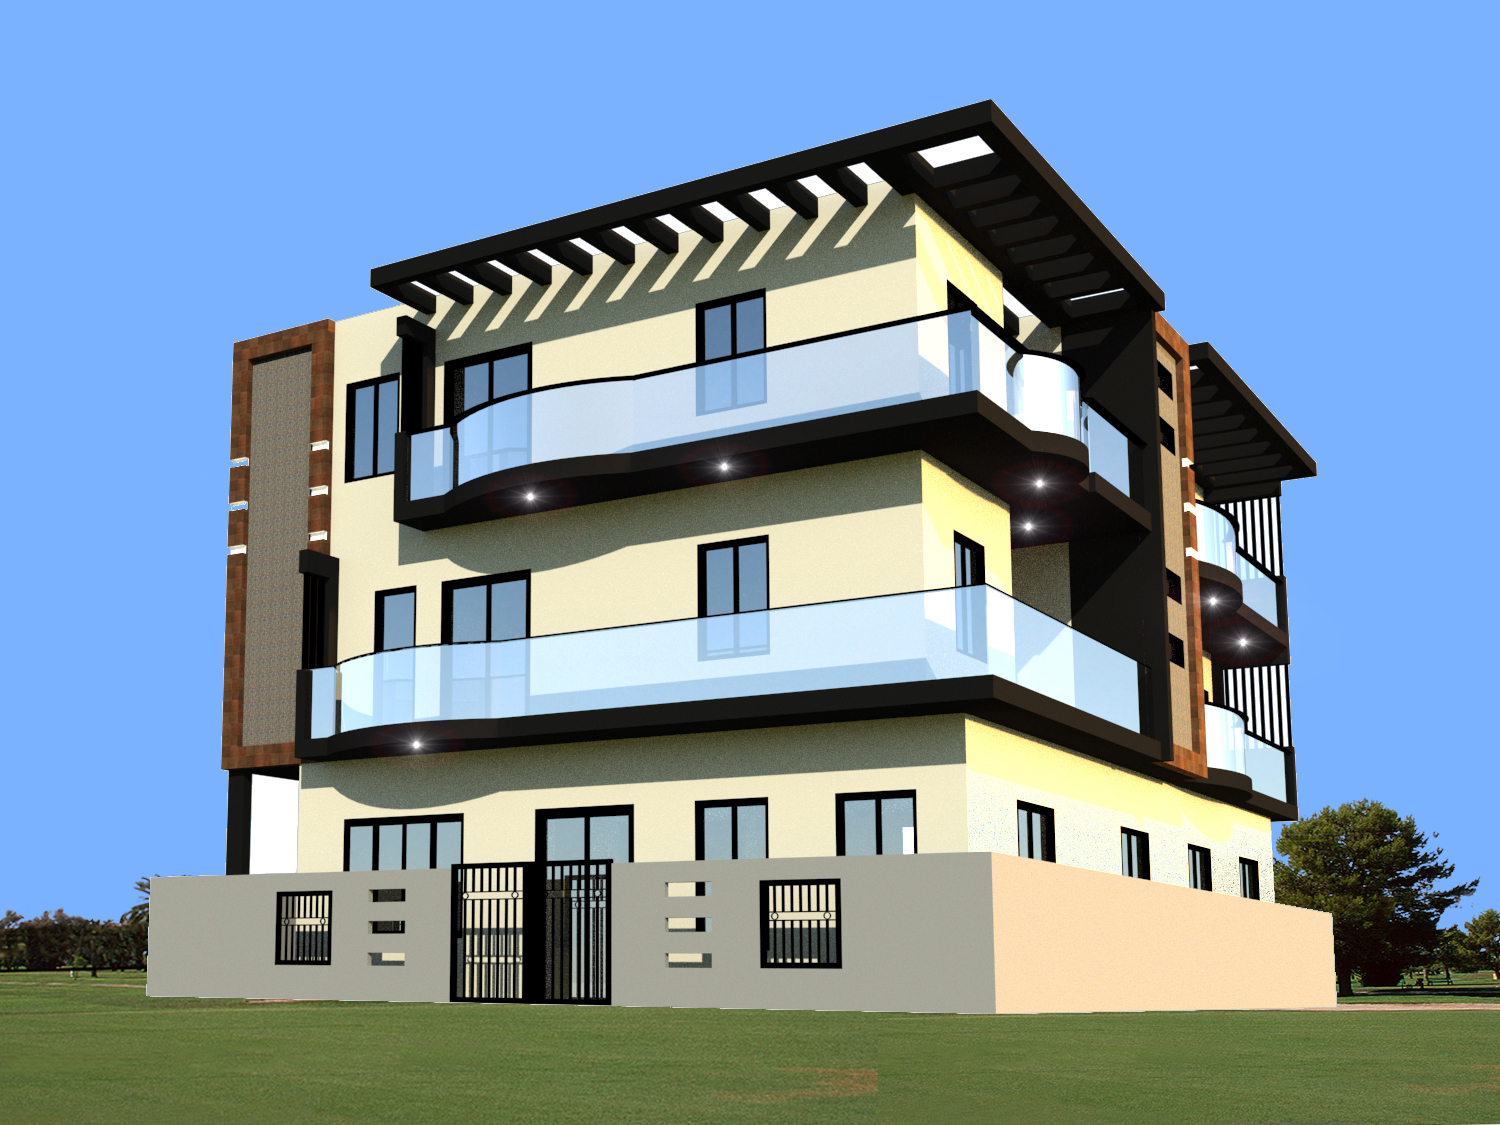 3 Story Apartment Building